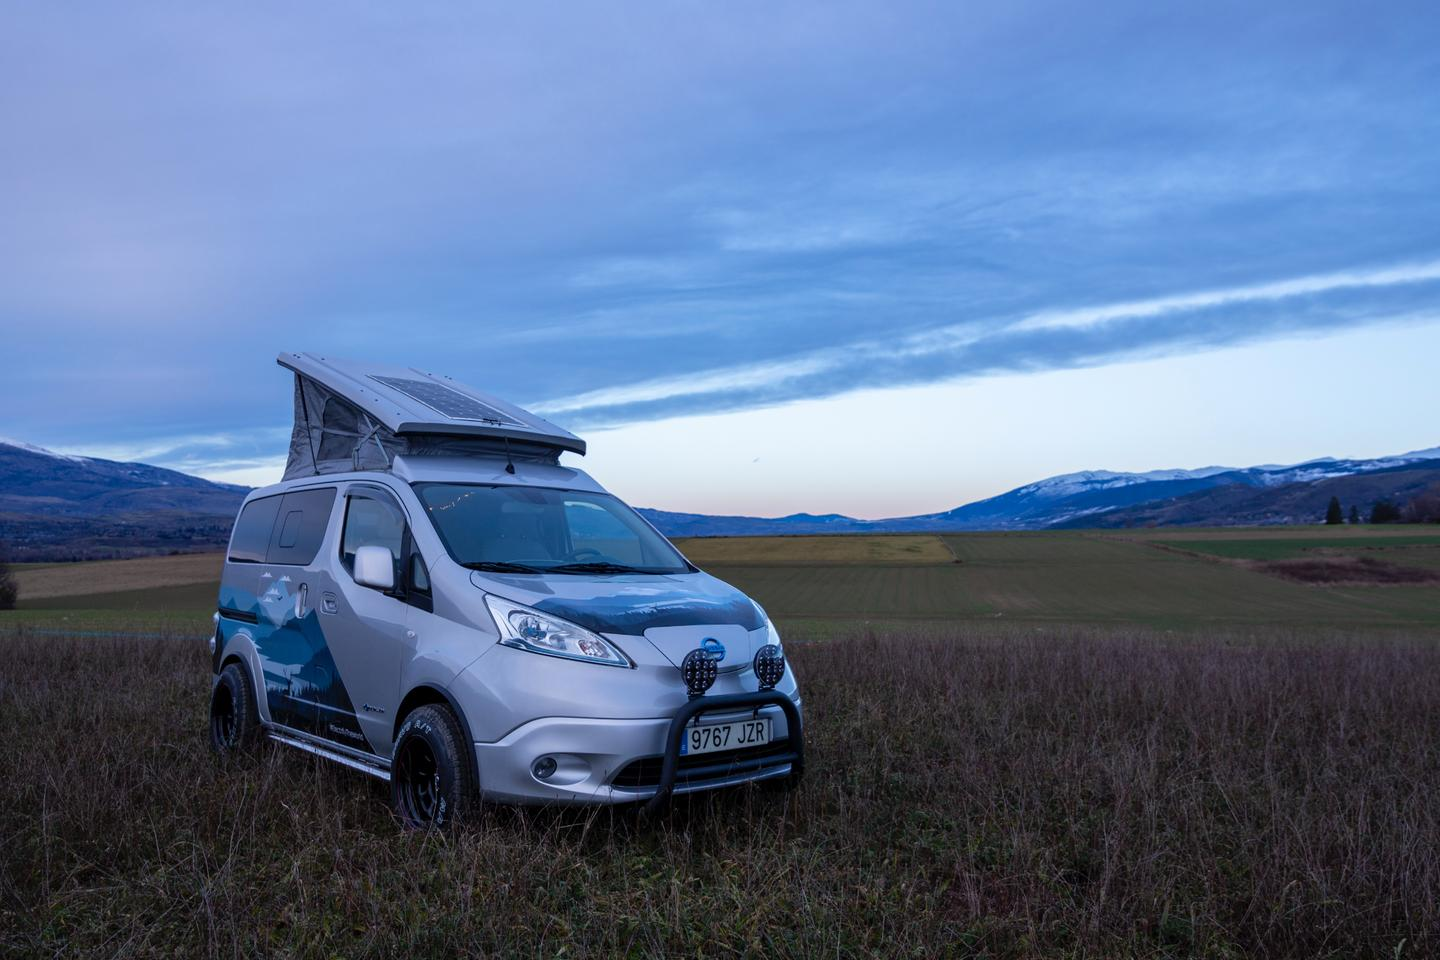 Nissan's e-NV200 Winter Camper also works just fine on dry, green ground